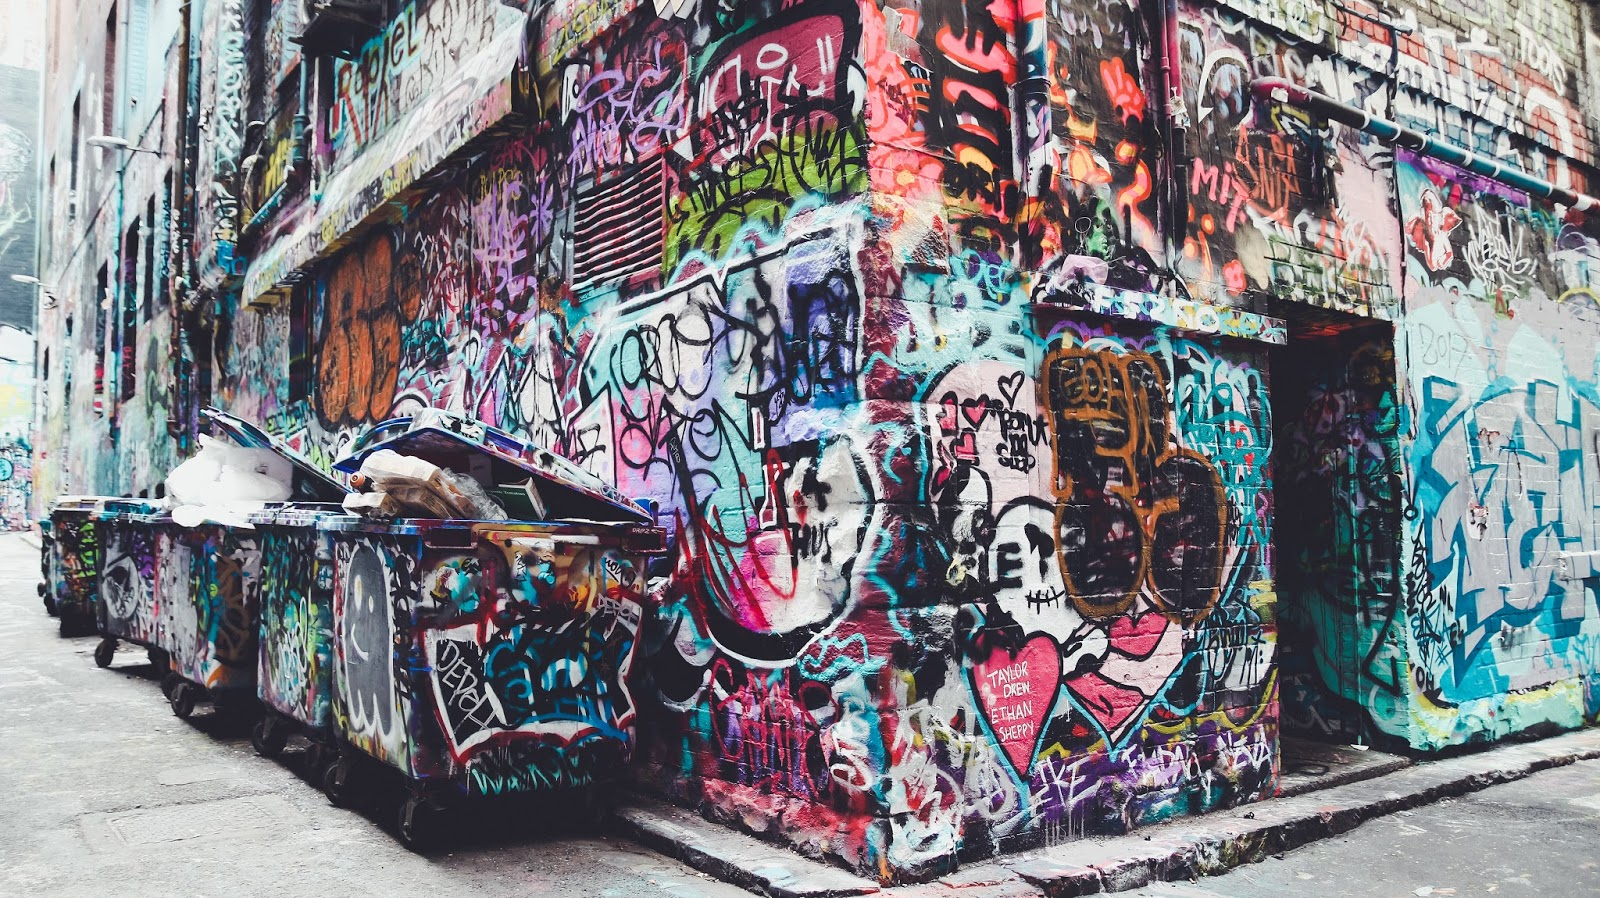 Hoiser Lane Grafitti Street Art in Melbourne, Australia | GlobalFashion Gal Travel Blog